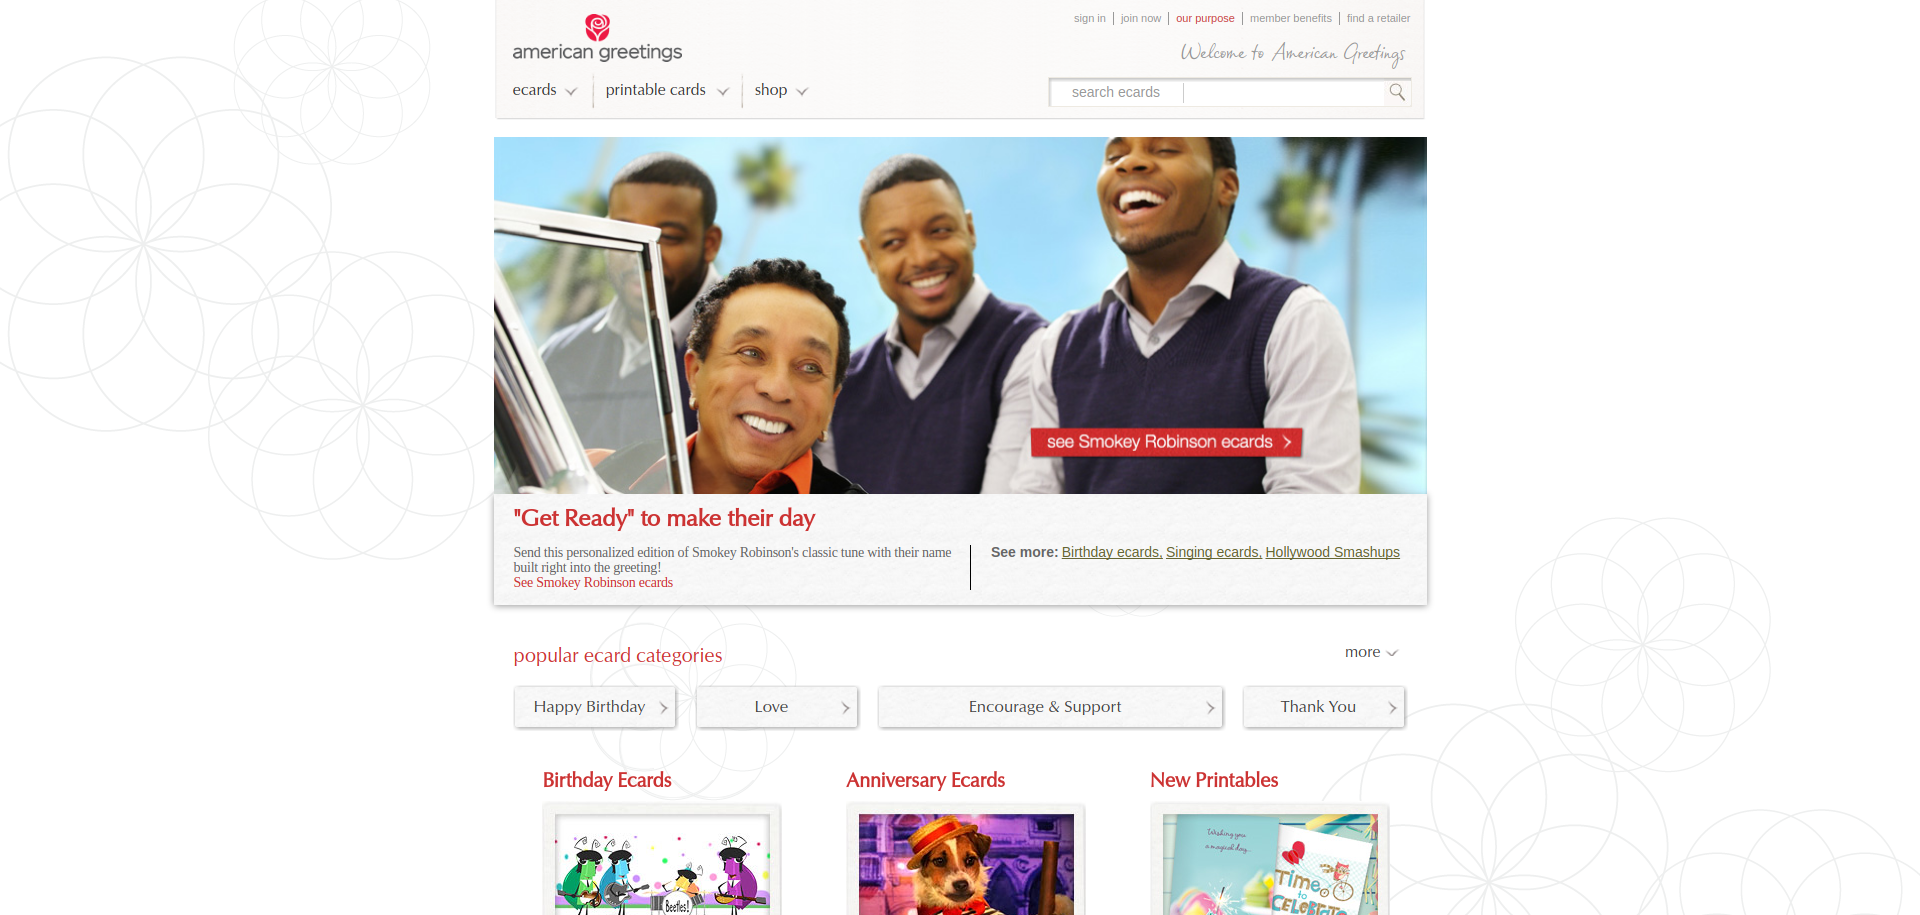 American Greetings Company Profile Office Locations Jobs Key